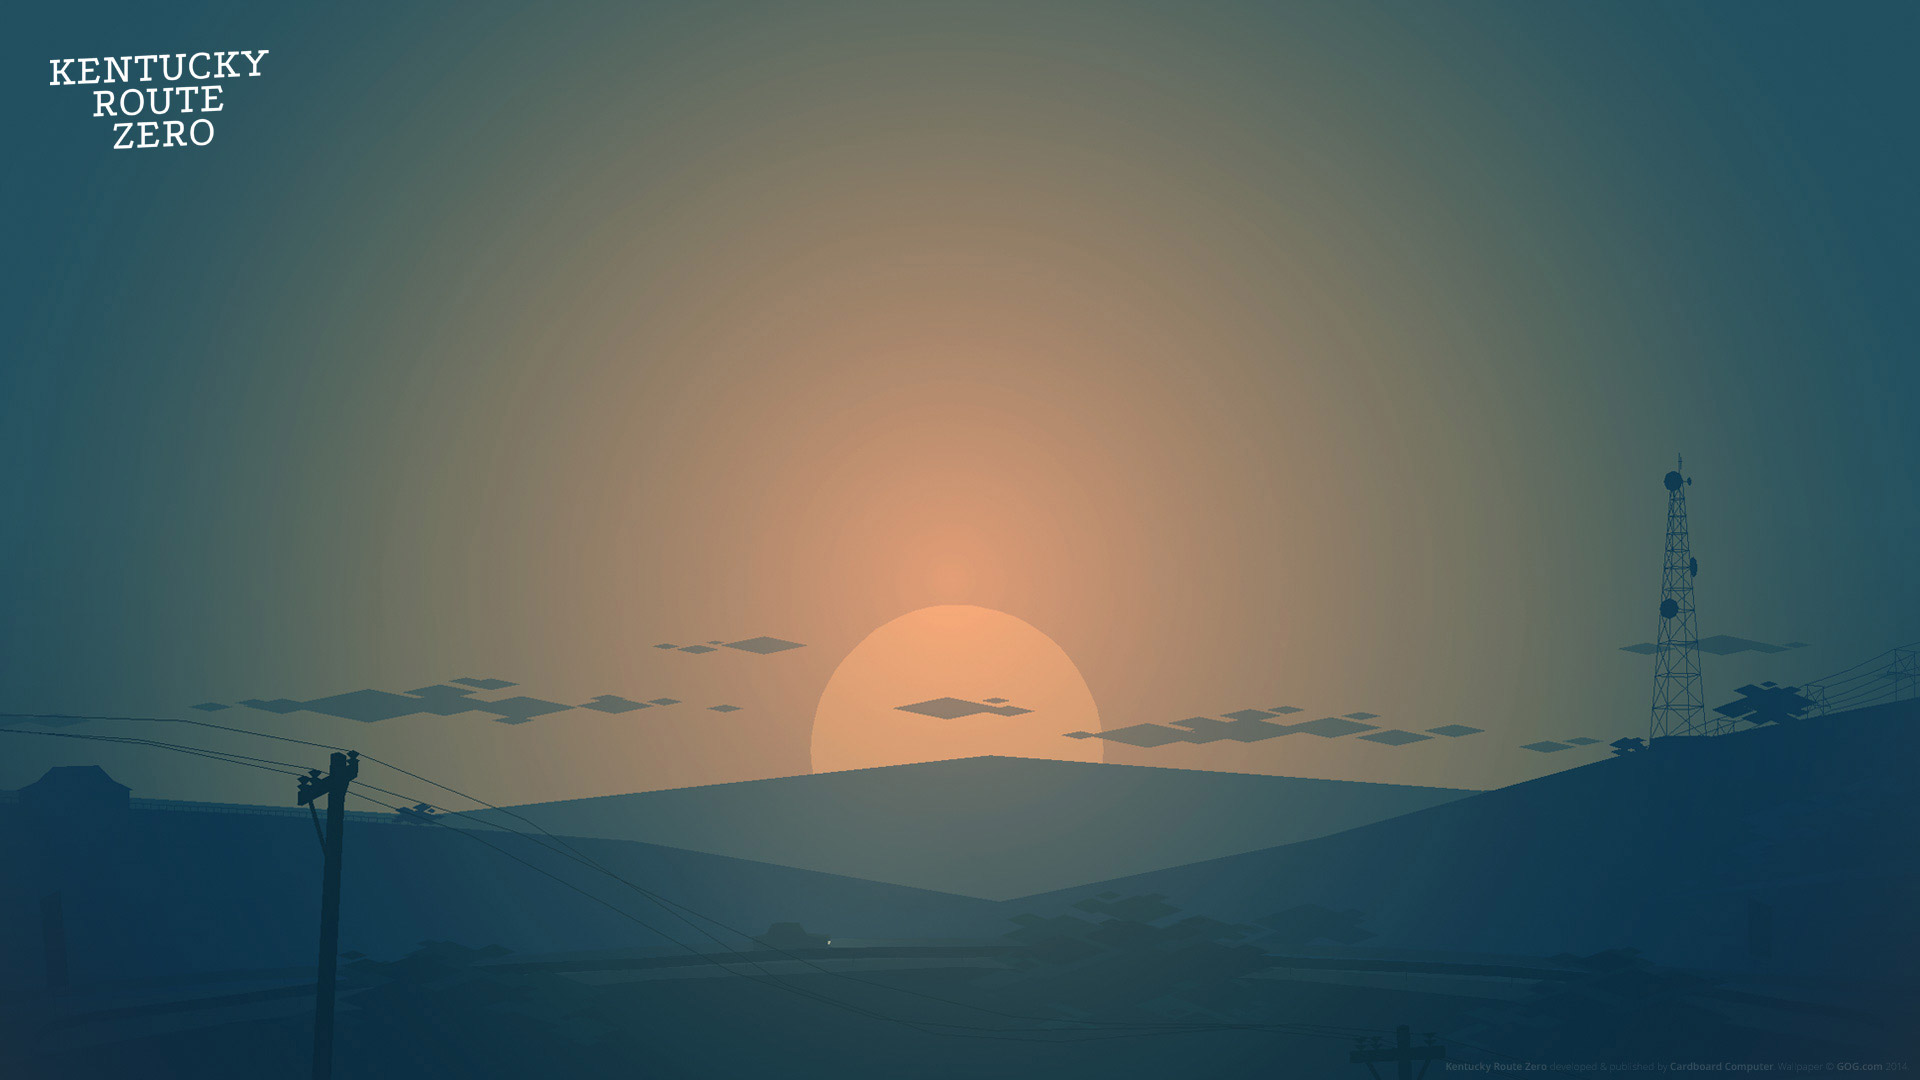 Kentucky Route Zero Wallpaper in 1920x1080